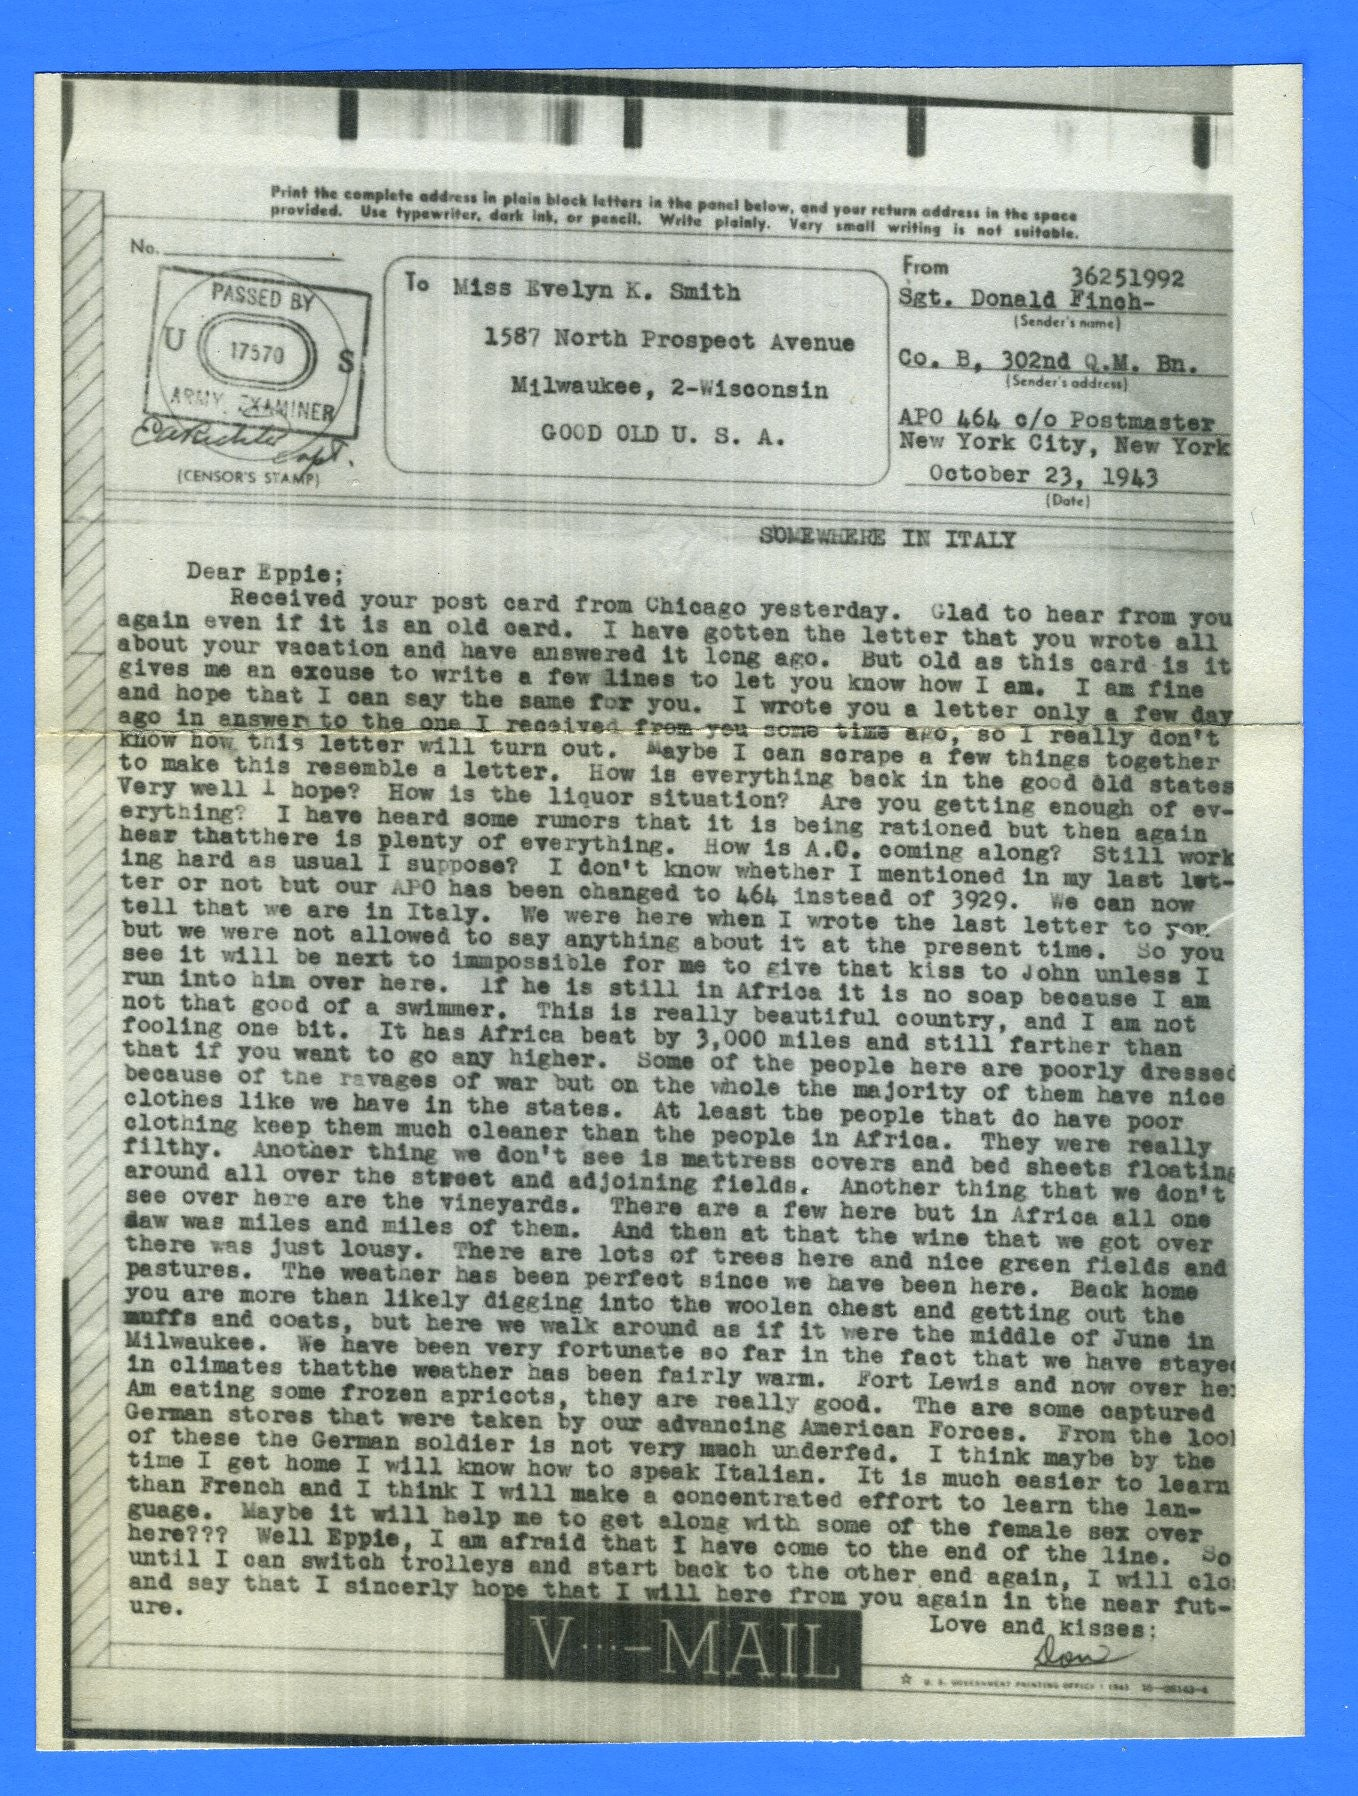 Soldier's Censored V Mail APO 464 Caserta, Italy October 23, 1943